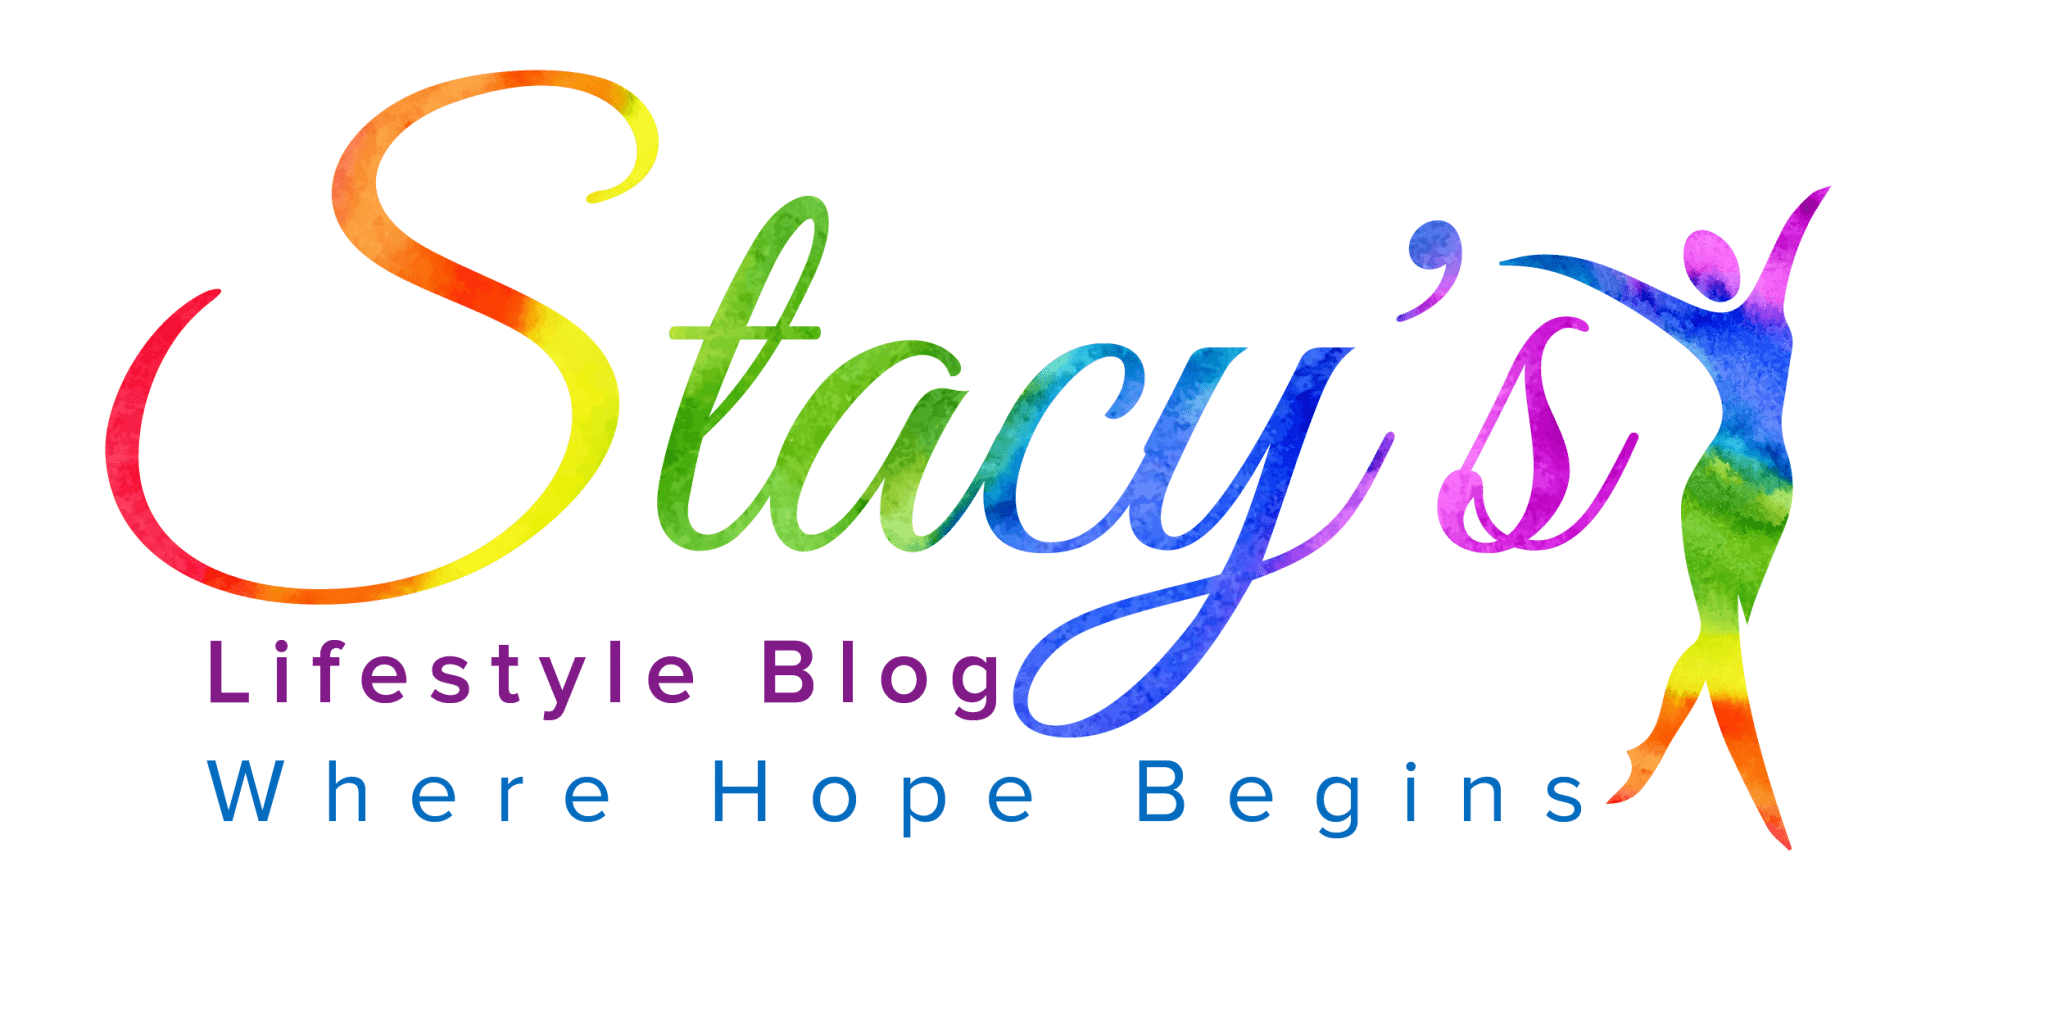 Stacy's Lifestyle Blog